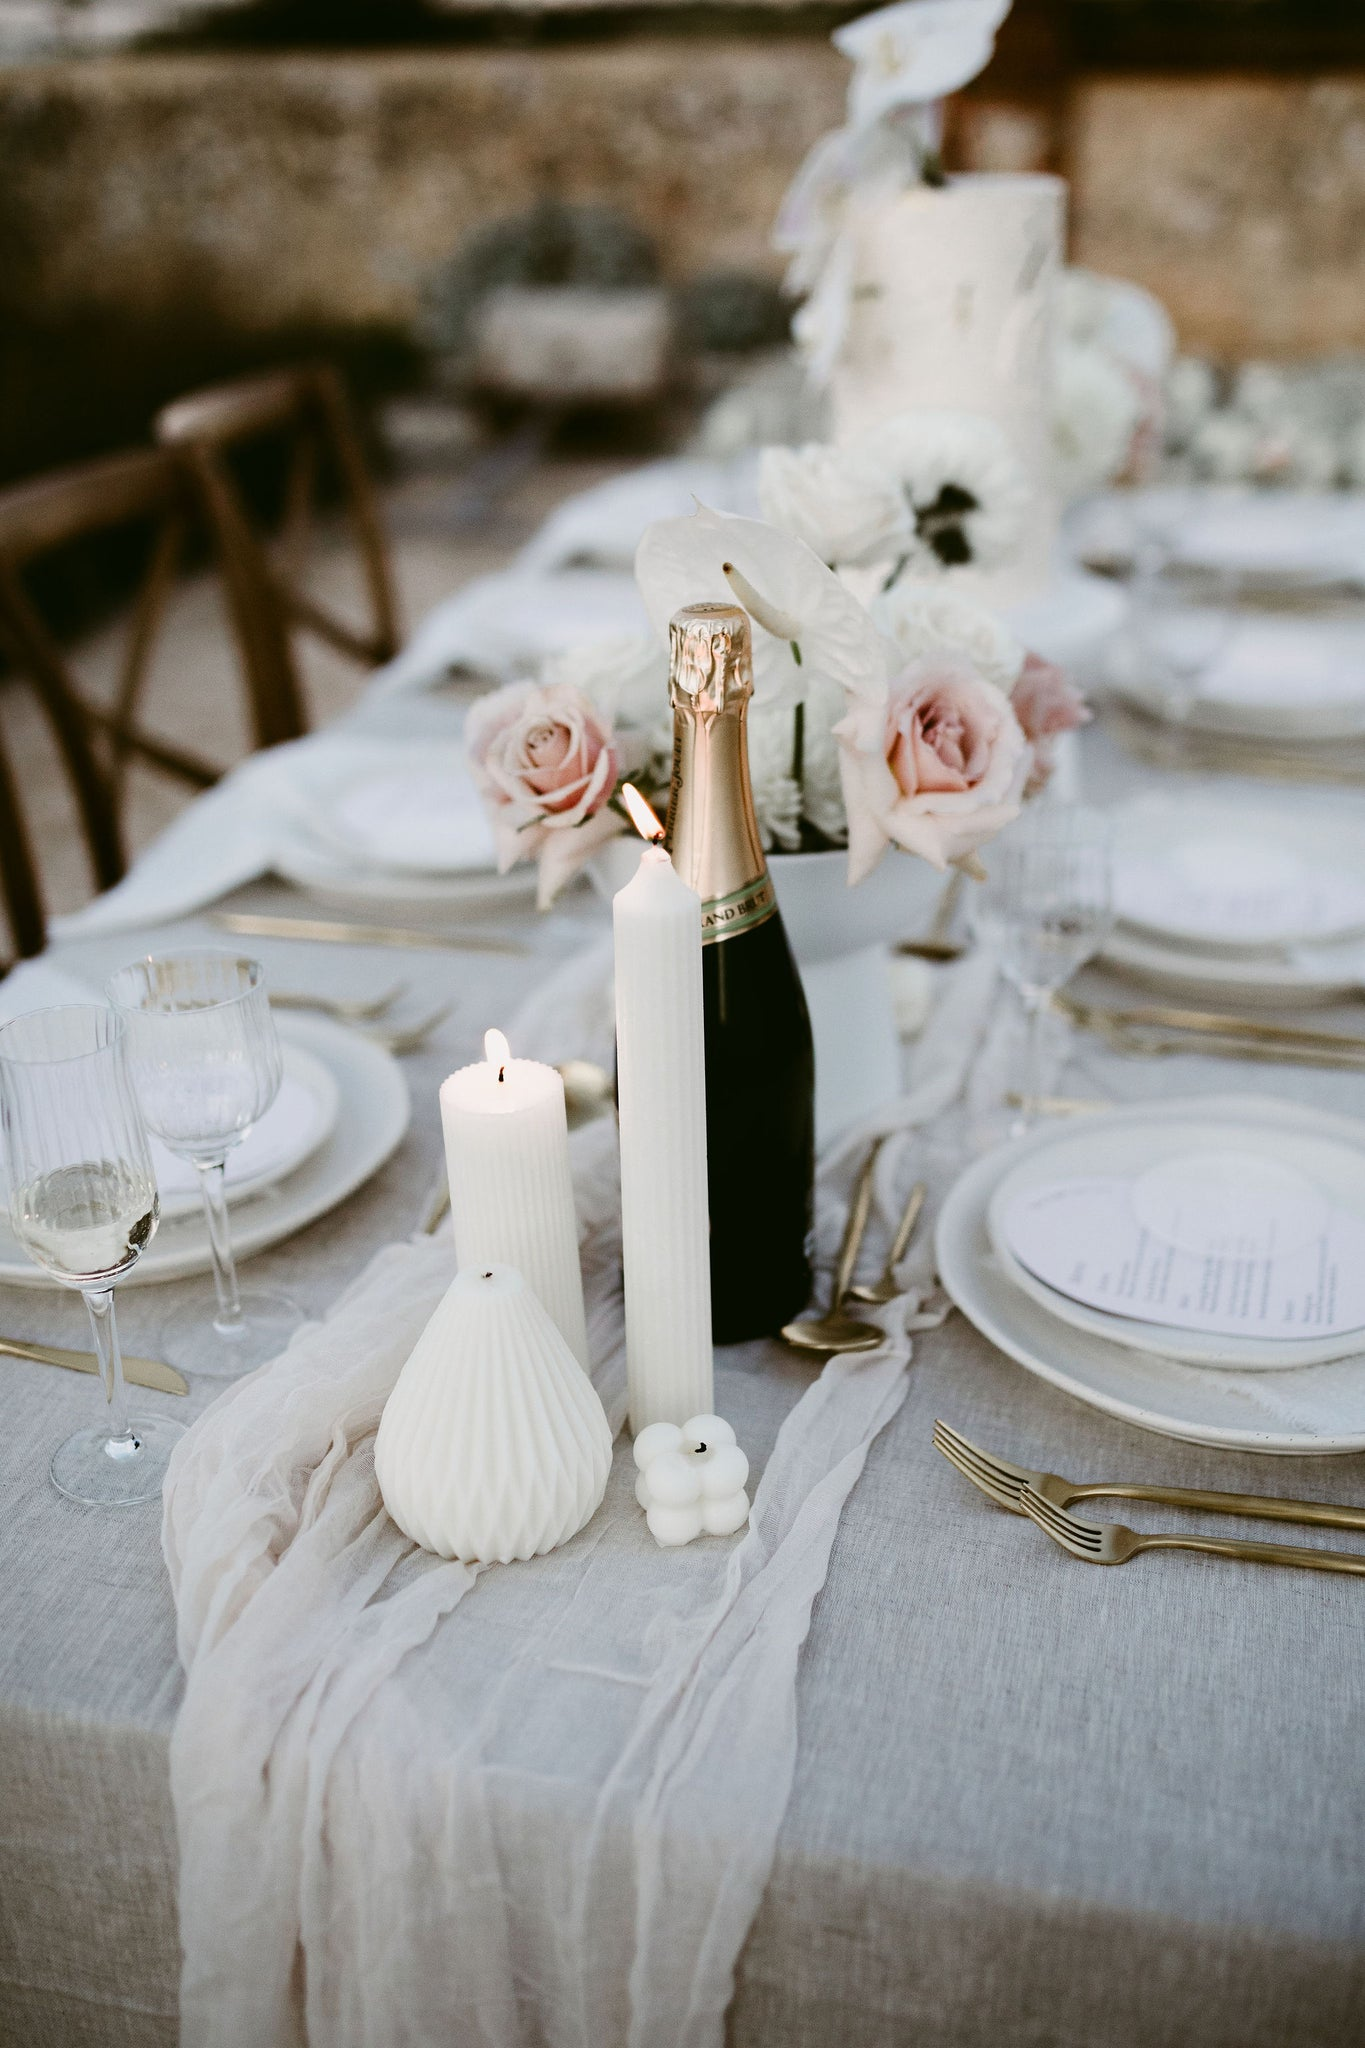 wedding reception table white napkins beige tablecloth